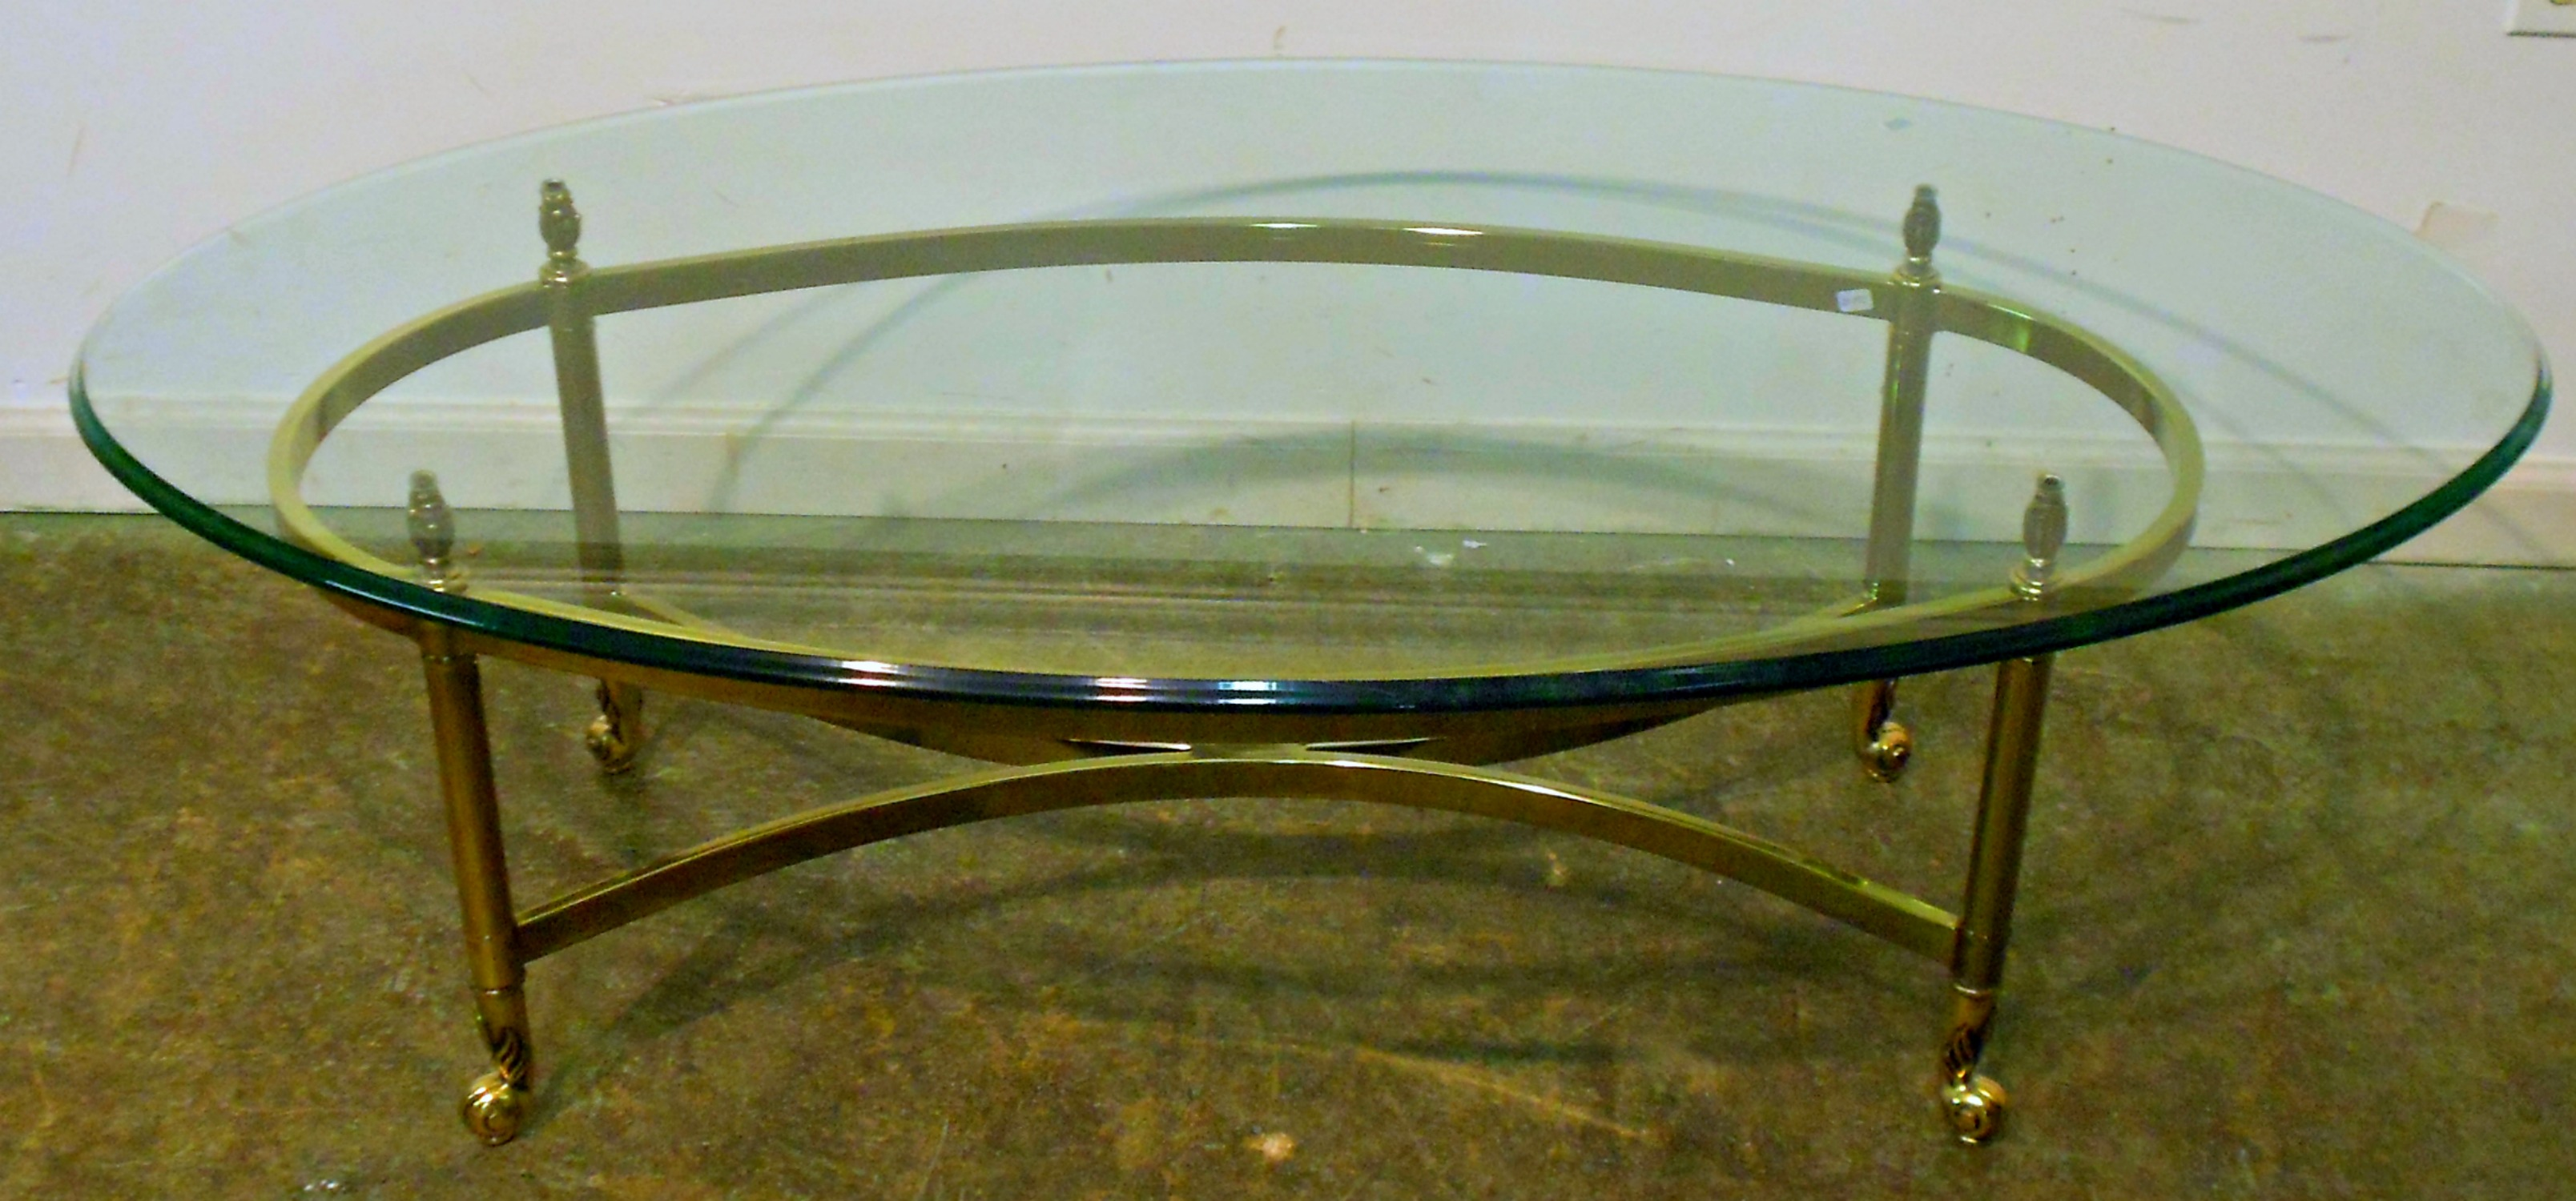 oval-glass-top-coffee-tables-Furniture-Oval-Glass-Top-Coffee-Table-With-Brass-Frame-And-Wheels-For-Contemporary-Living-Room-Spaces-Ideas-Wood (Image 4 of 10)